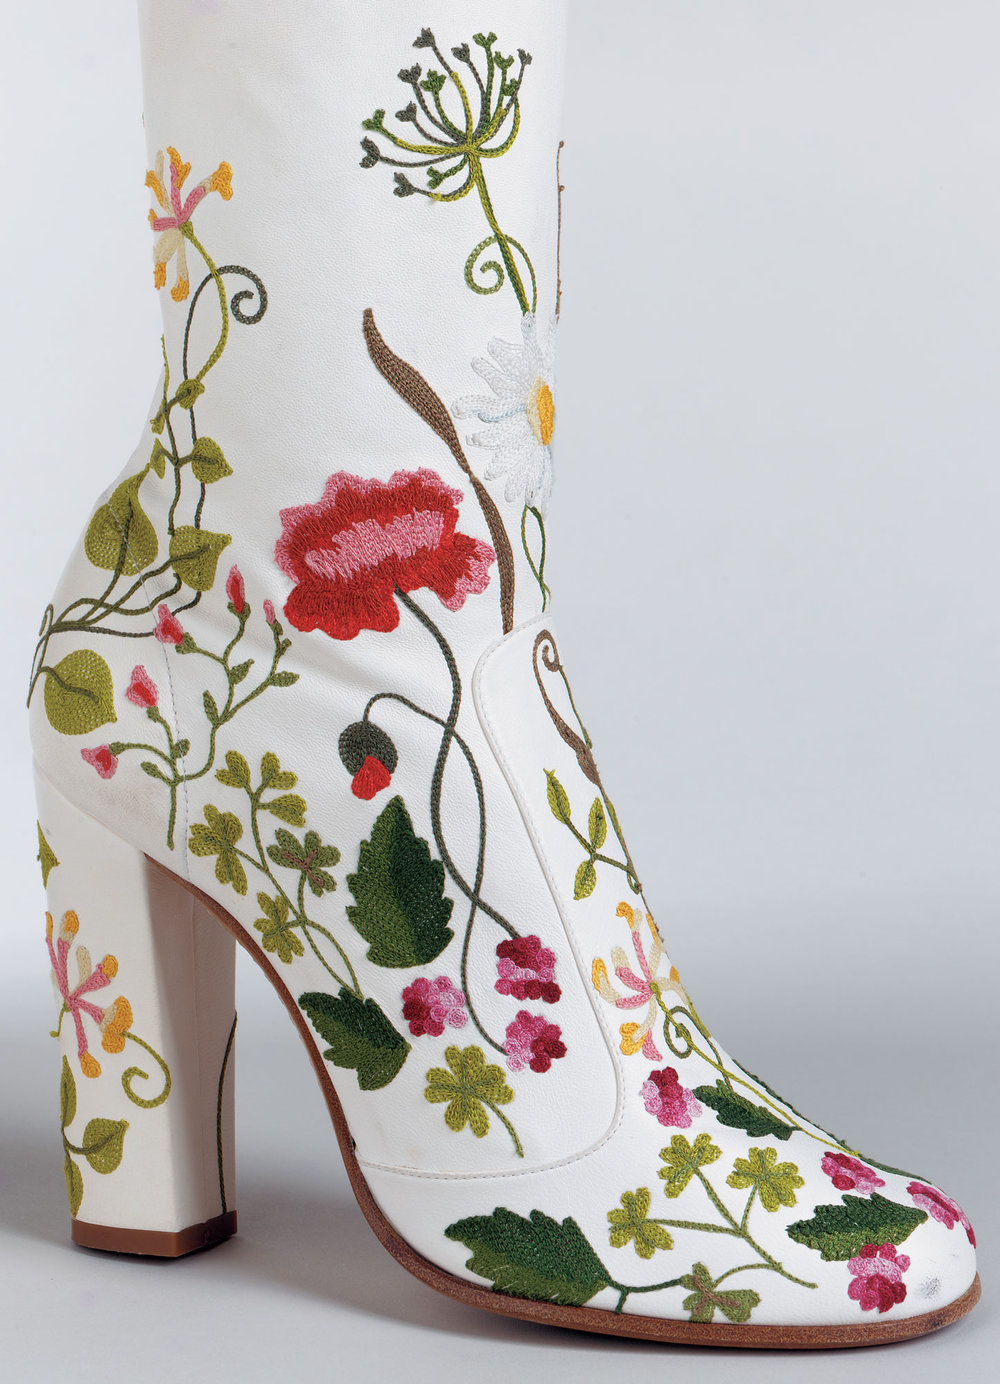 Marc Jacobs,  Pair of boots  (detail), 2002. Leather with silk floss embroidery. Collection of Phoenix Art Museum. Gift of Arizona Costume Institute and Ardie and Steve Evans.